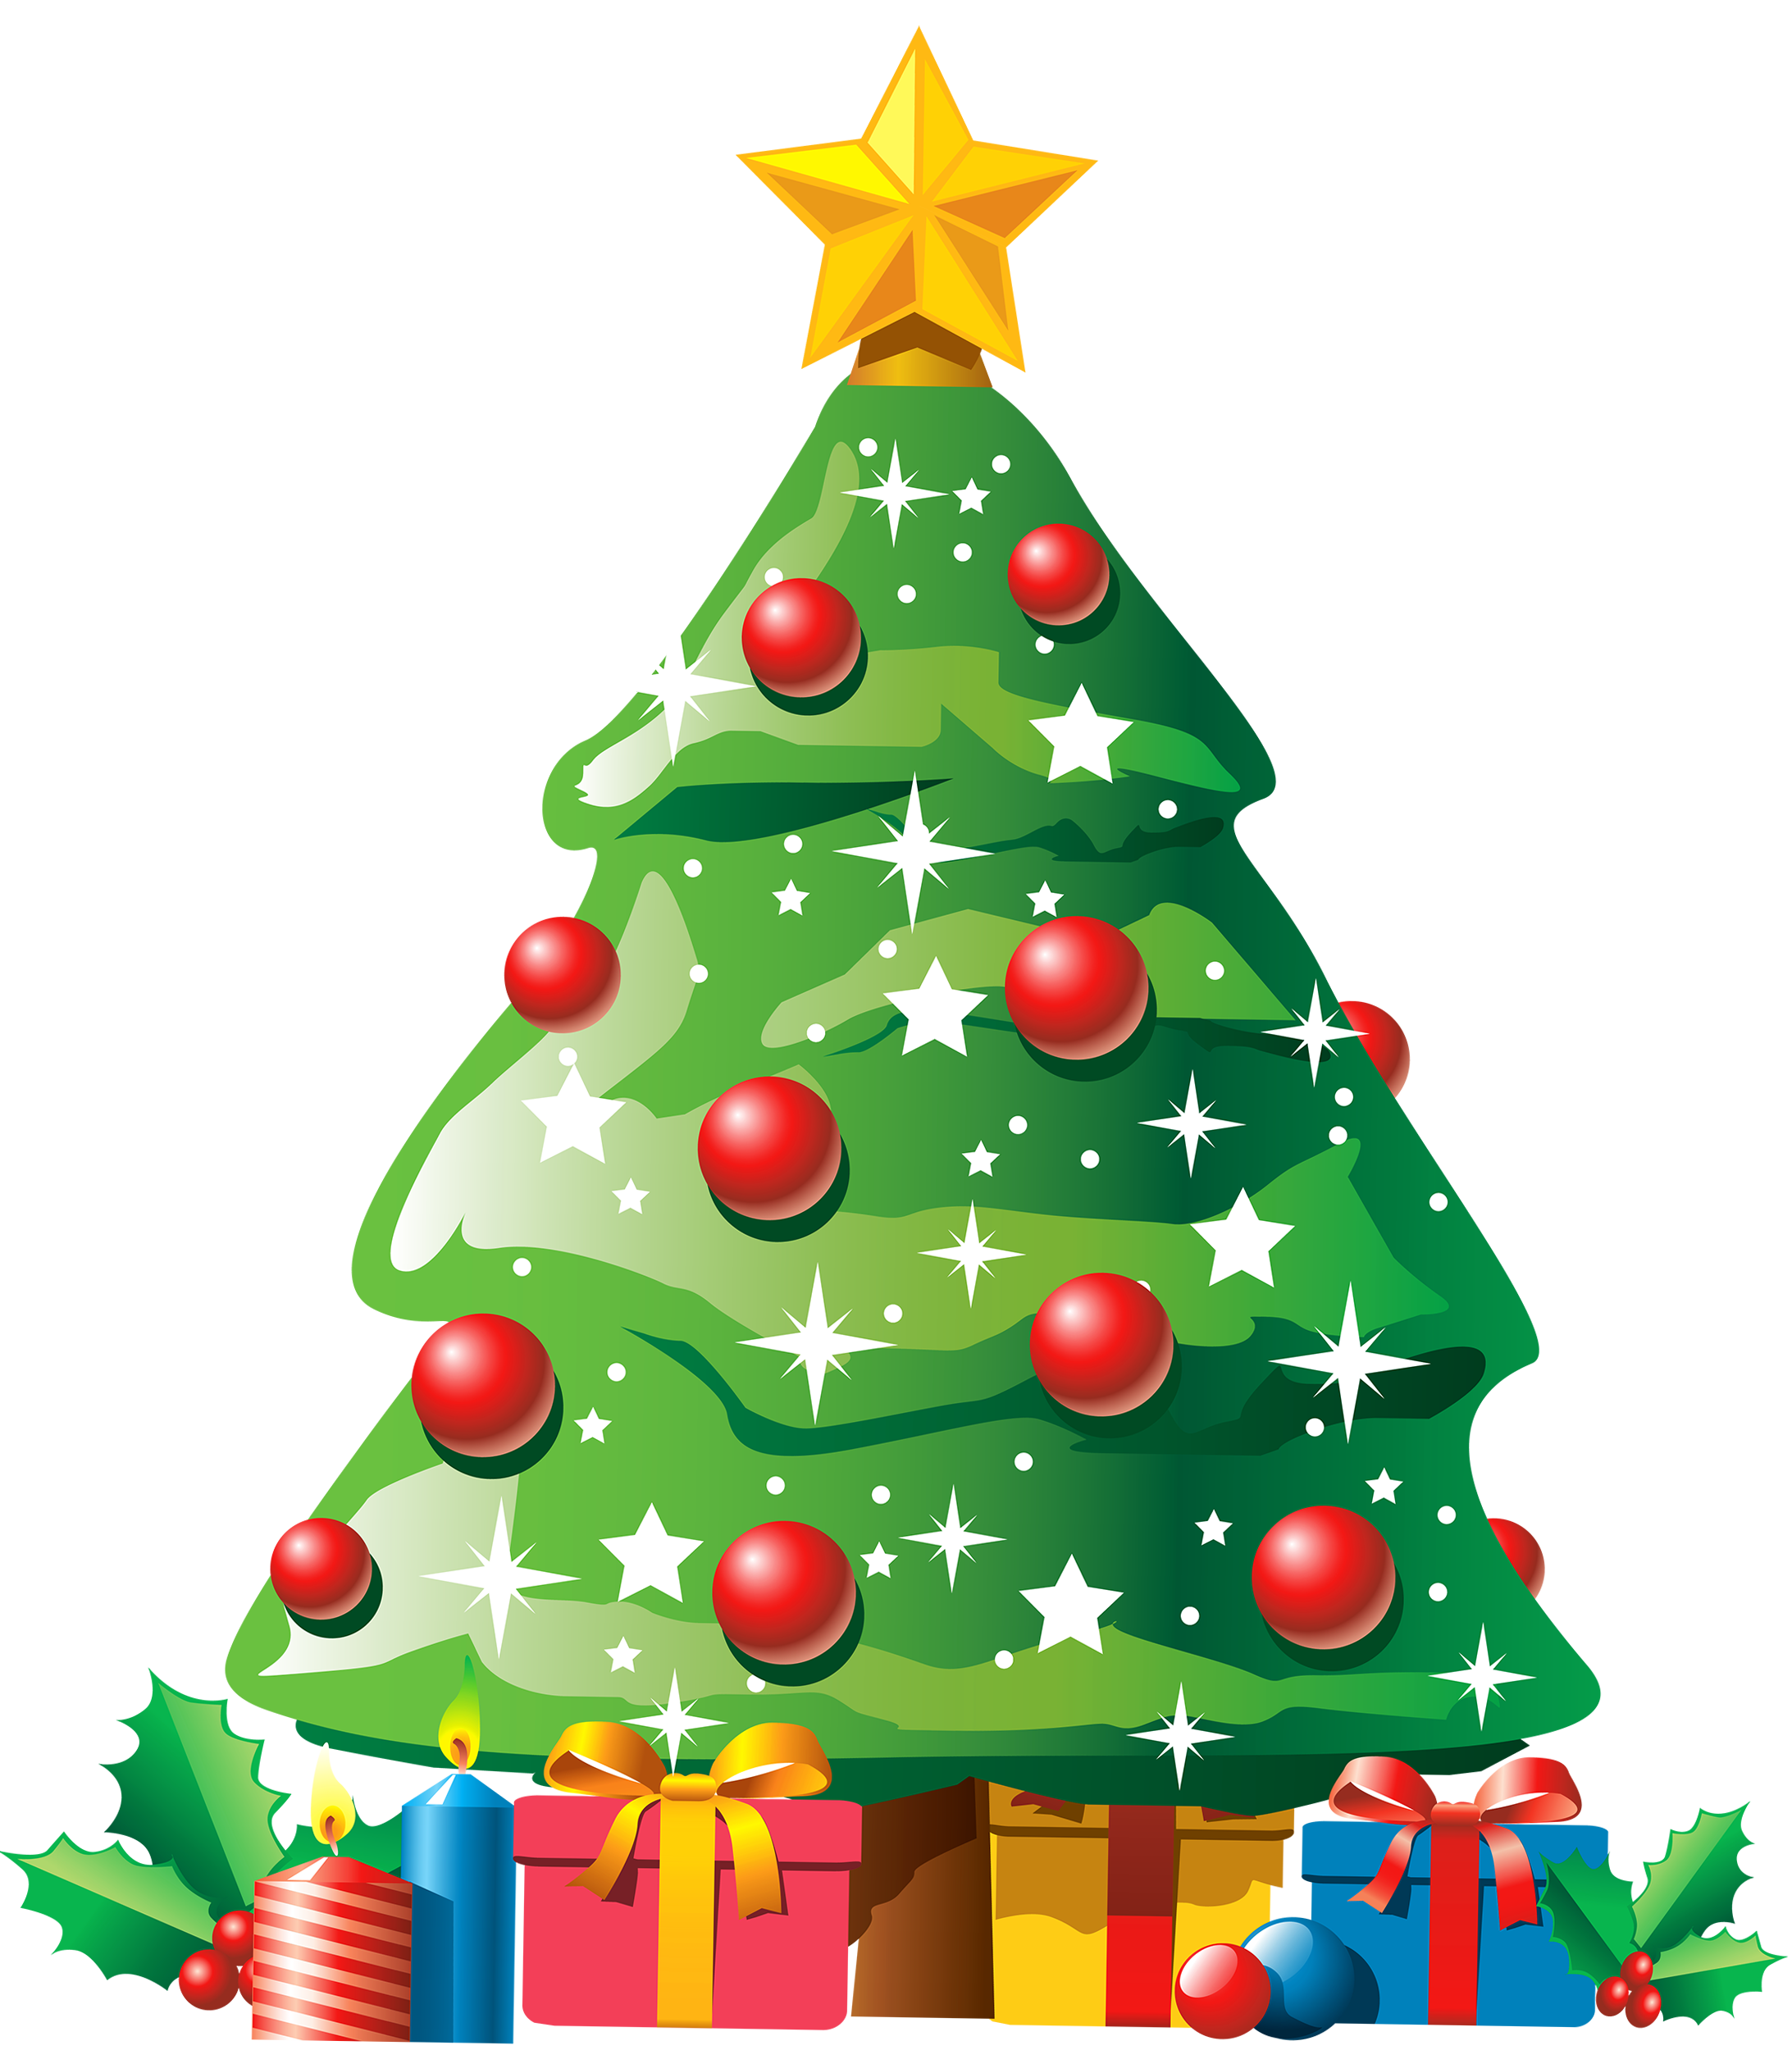 Christmas clipart png picture freeuse library Christmas Tree with Gifts PNG Clipart - Best WEB Clipart picture freeuse library